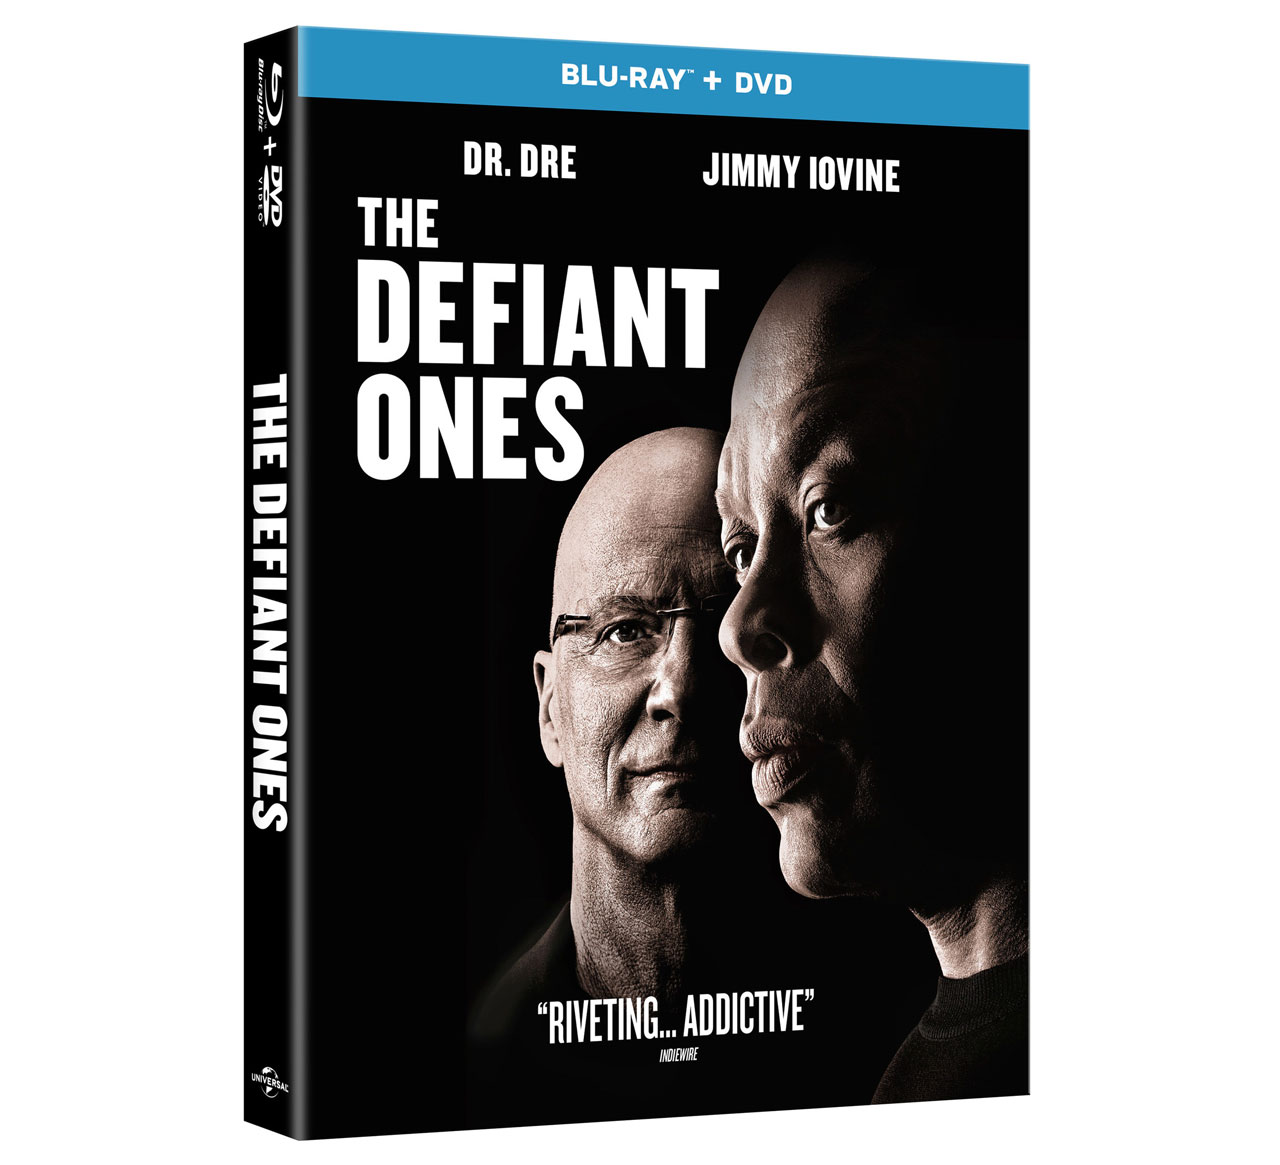 HBO's The Defiant Ones releasing to Blu-ray, DVD & Digital ...